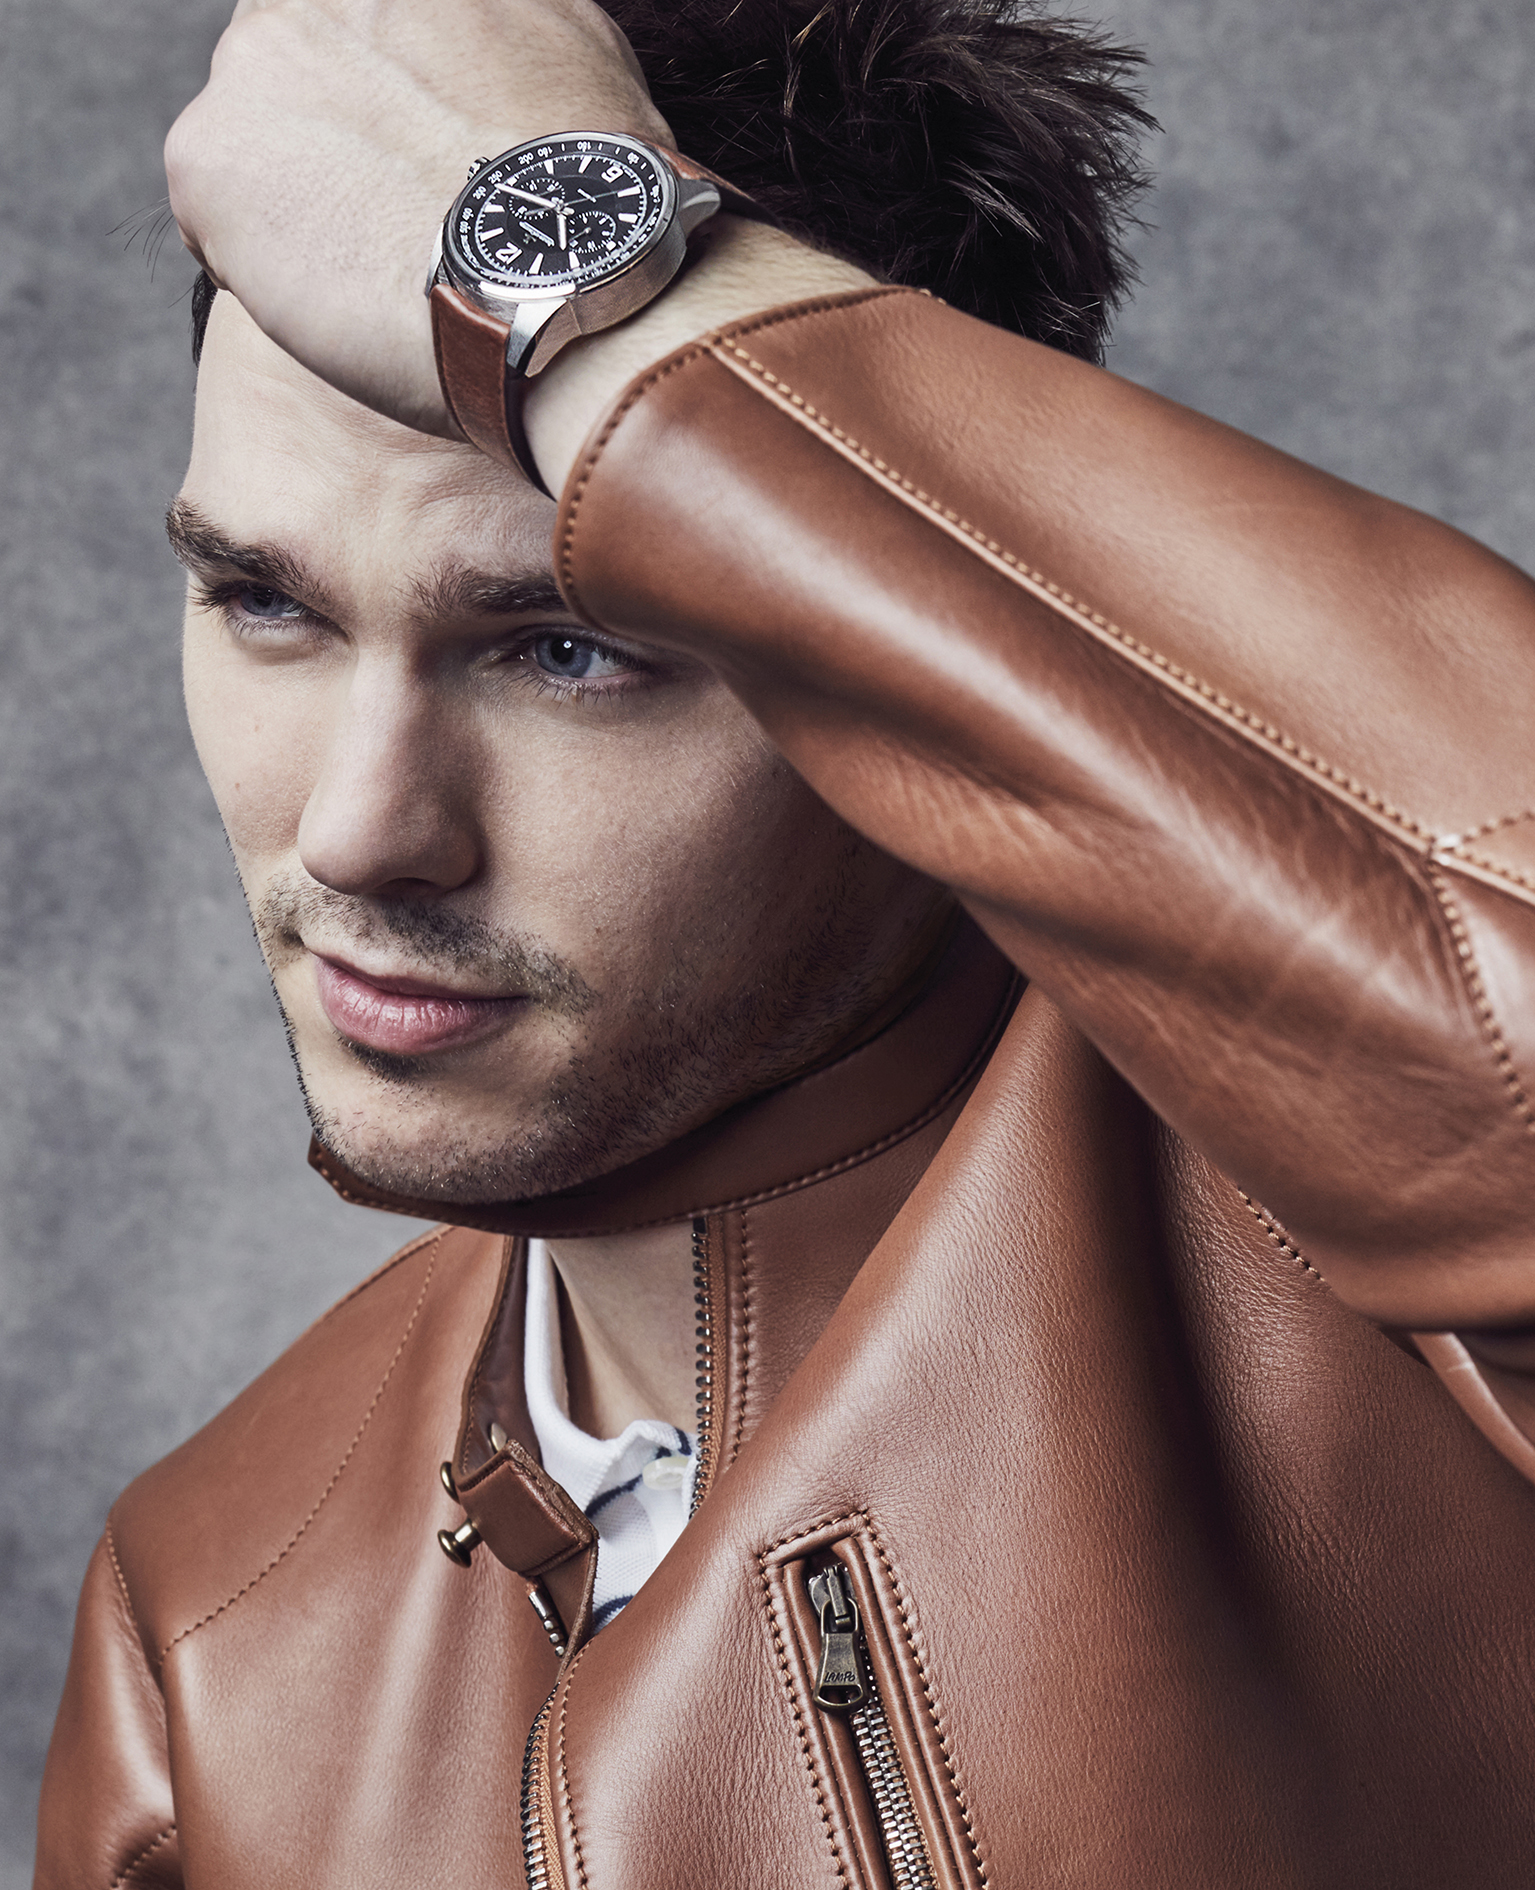 Nicholas Hoult is wearing a leather jacket from dunhill and the Jaeger-LeCoultre Polaris Chronograph in stainless steel